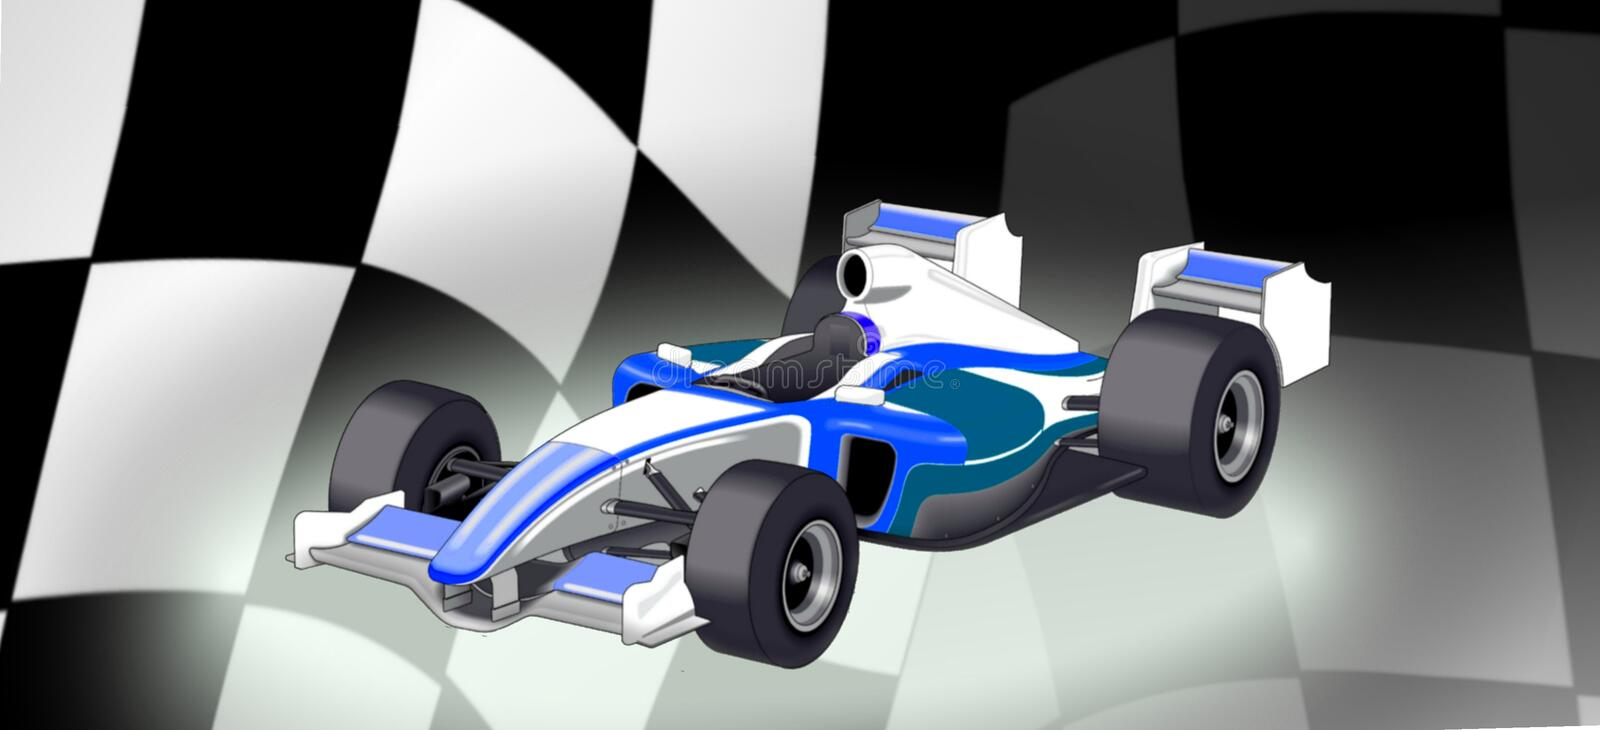 bil f1 vektor illustrationer